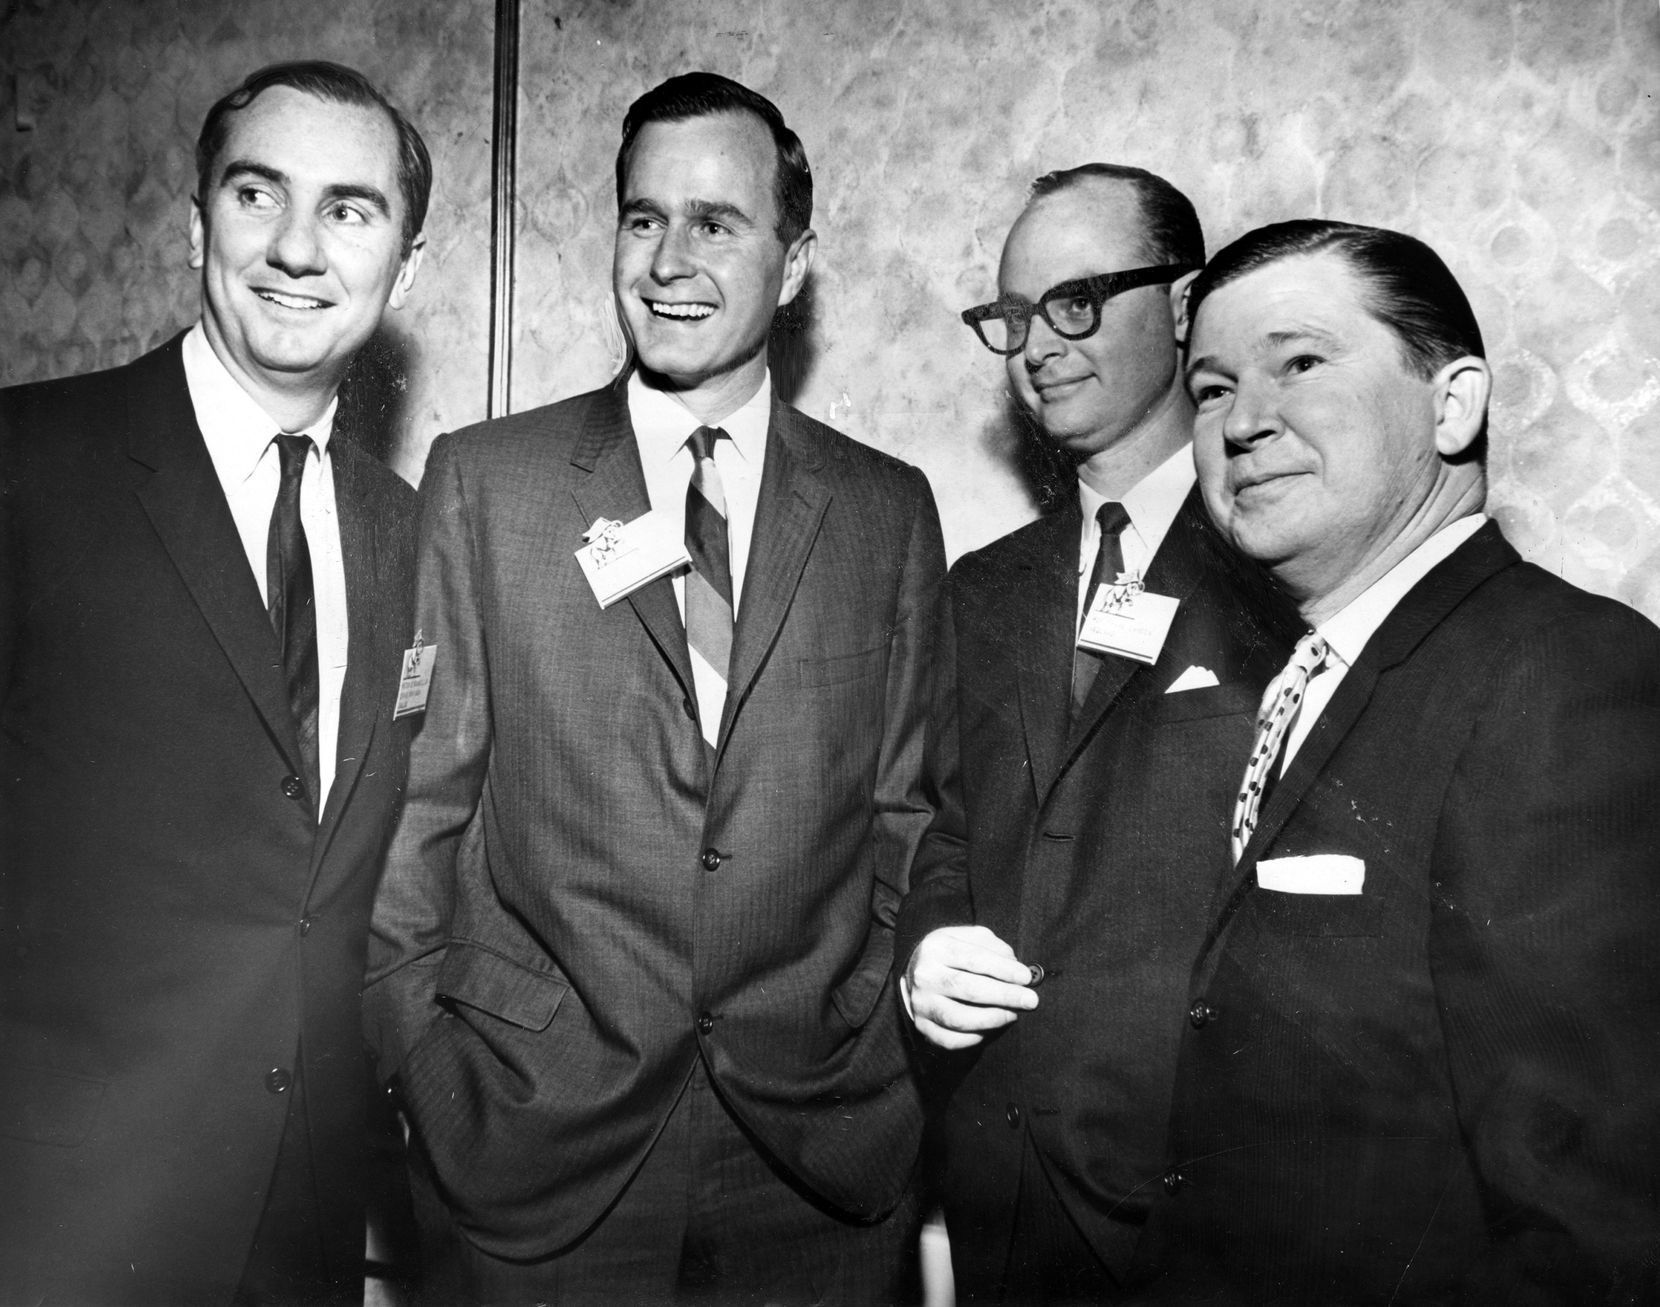 Peter O'Donnell (from left), George H.W. Bush, Frank Cahoon and John Tower.